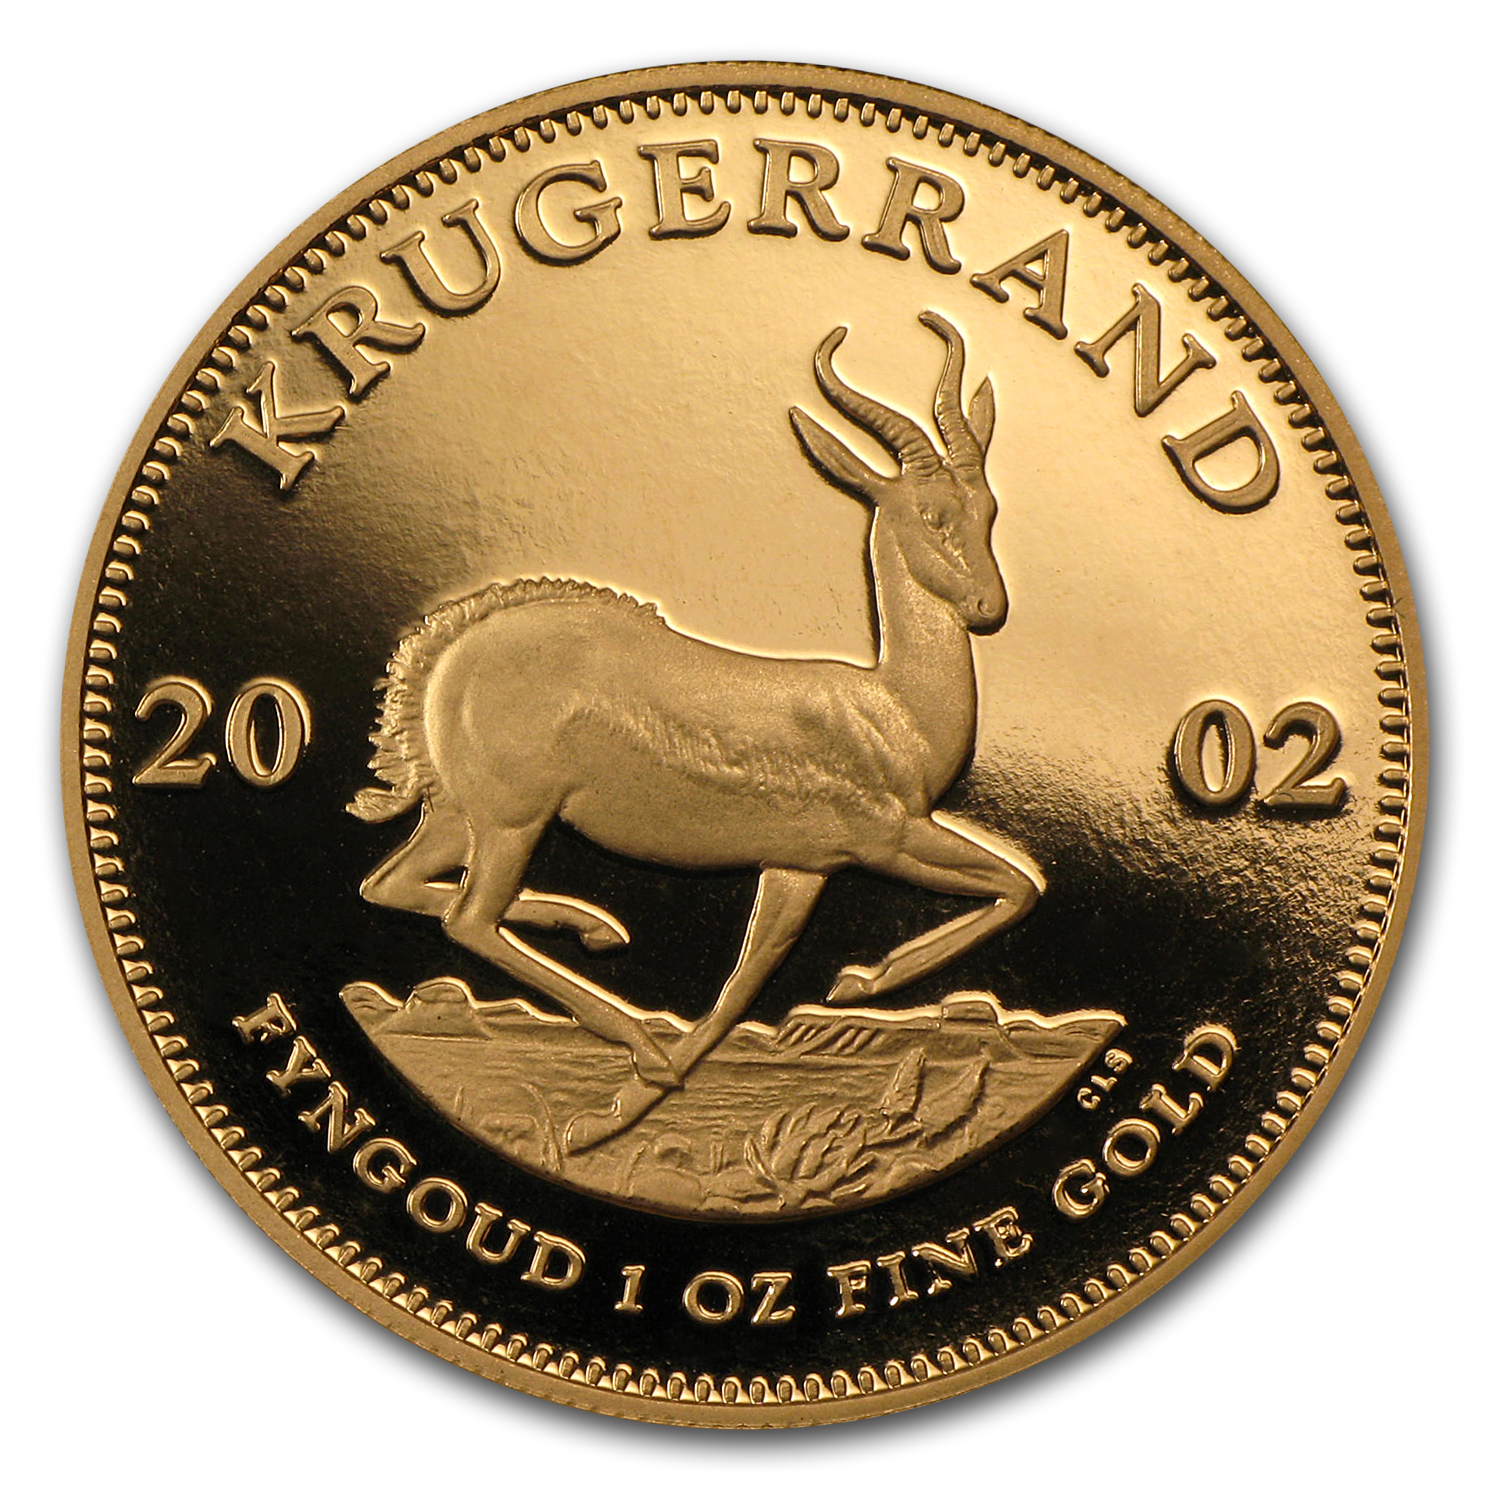 2002 1 oz Gold South African Krugerrand (Proof) w/Box